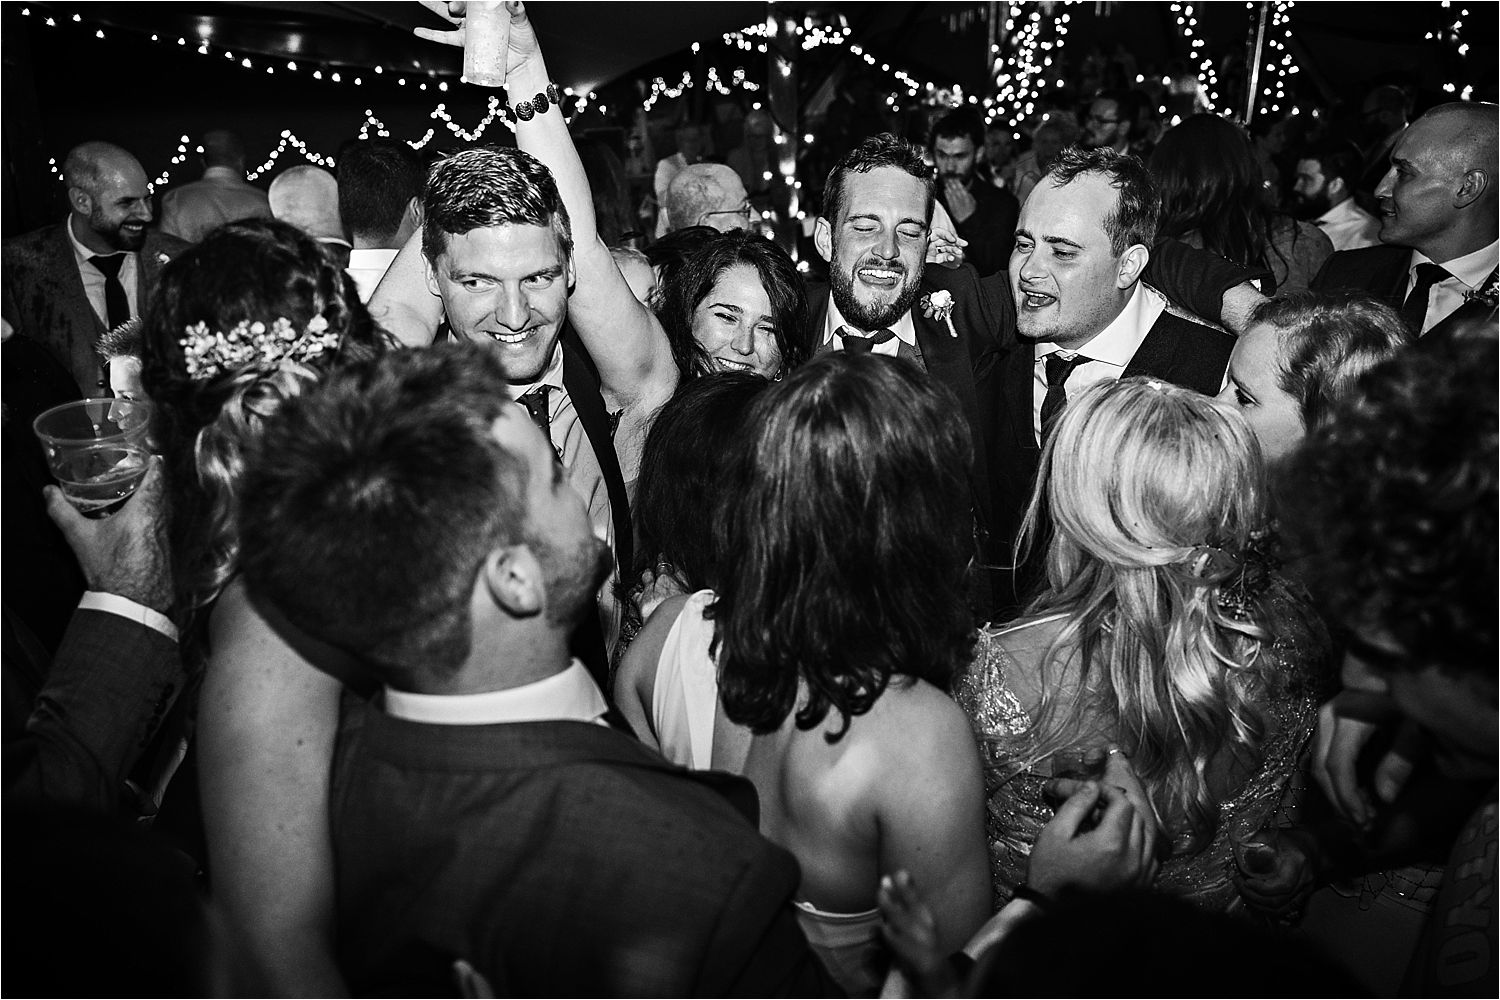 Dancing the night away at Bedforshire tipi wedding Tipi by Country Tipis